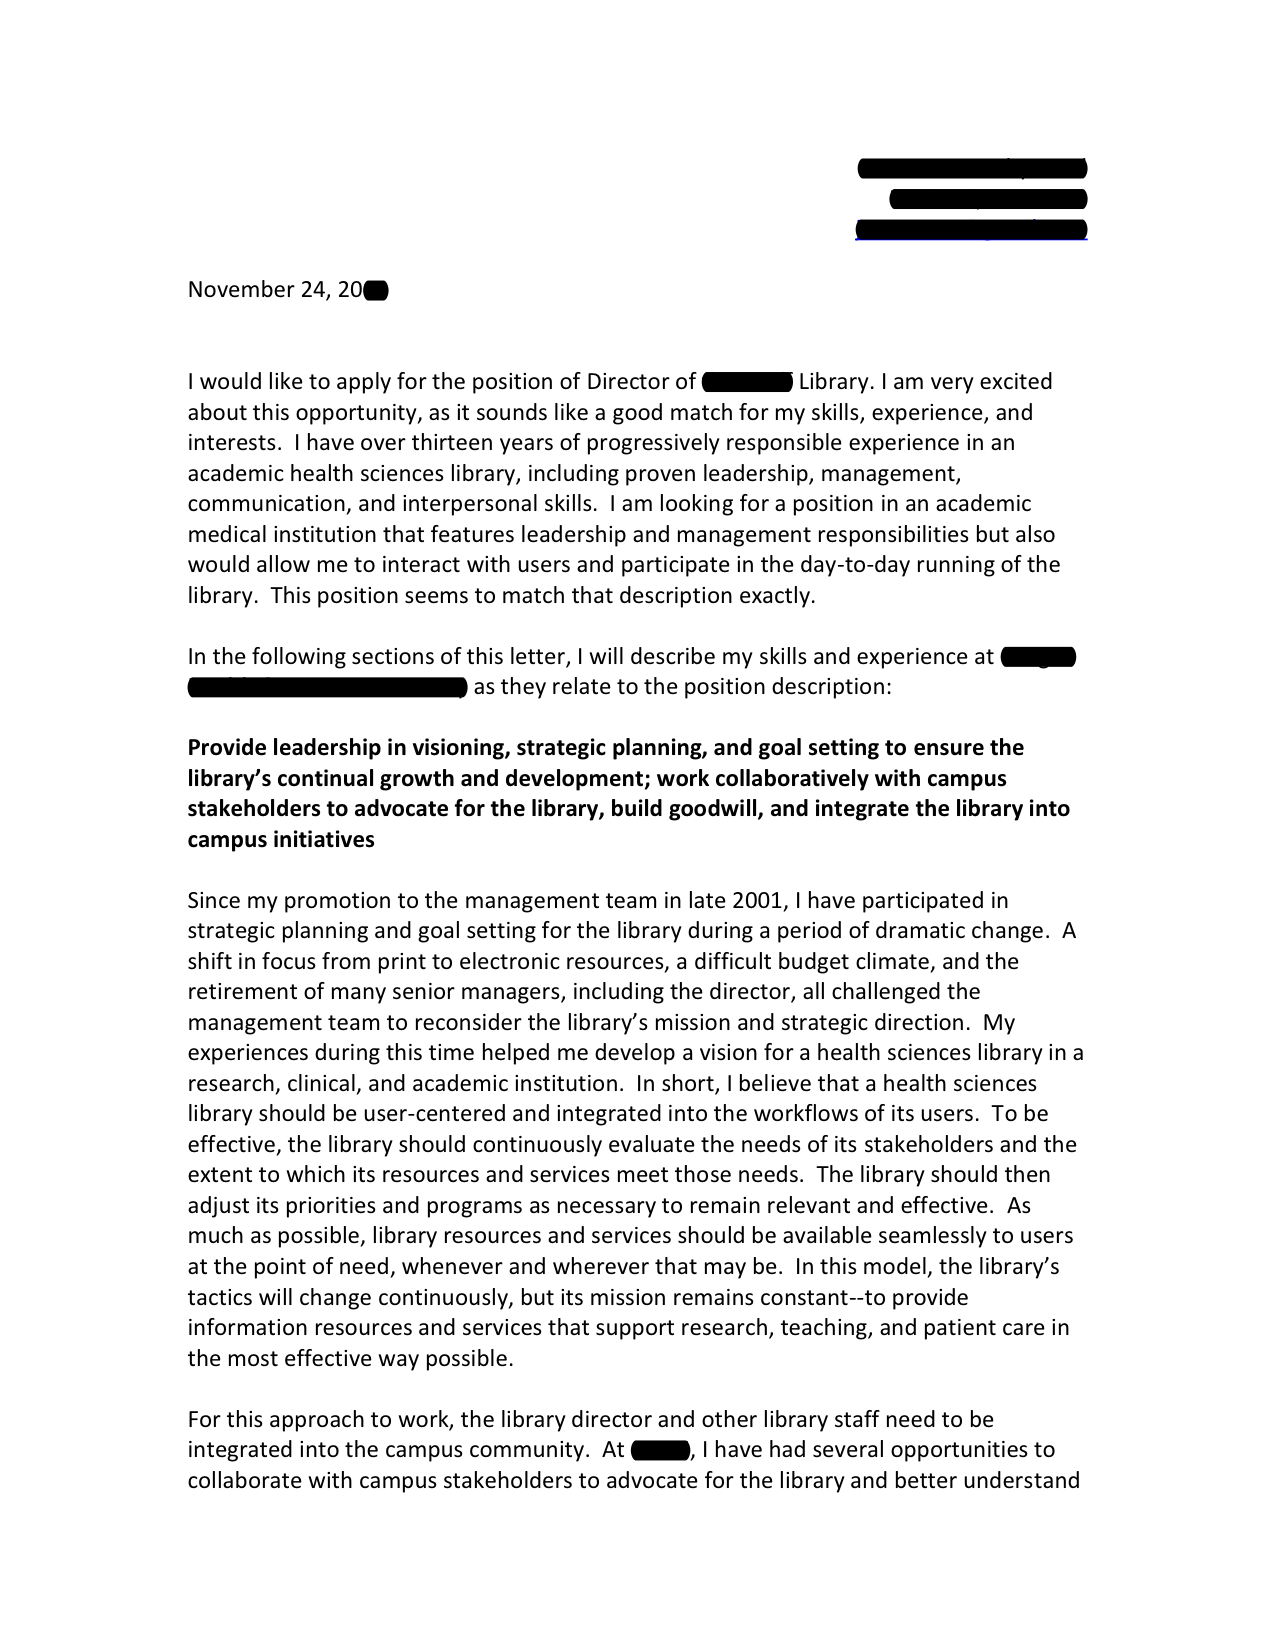 share this cover letter research cover letter research cover letter social work cover letter examples